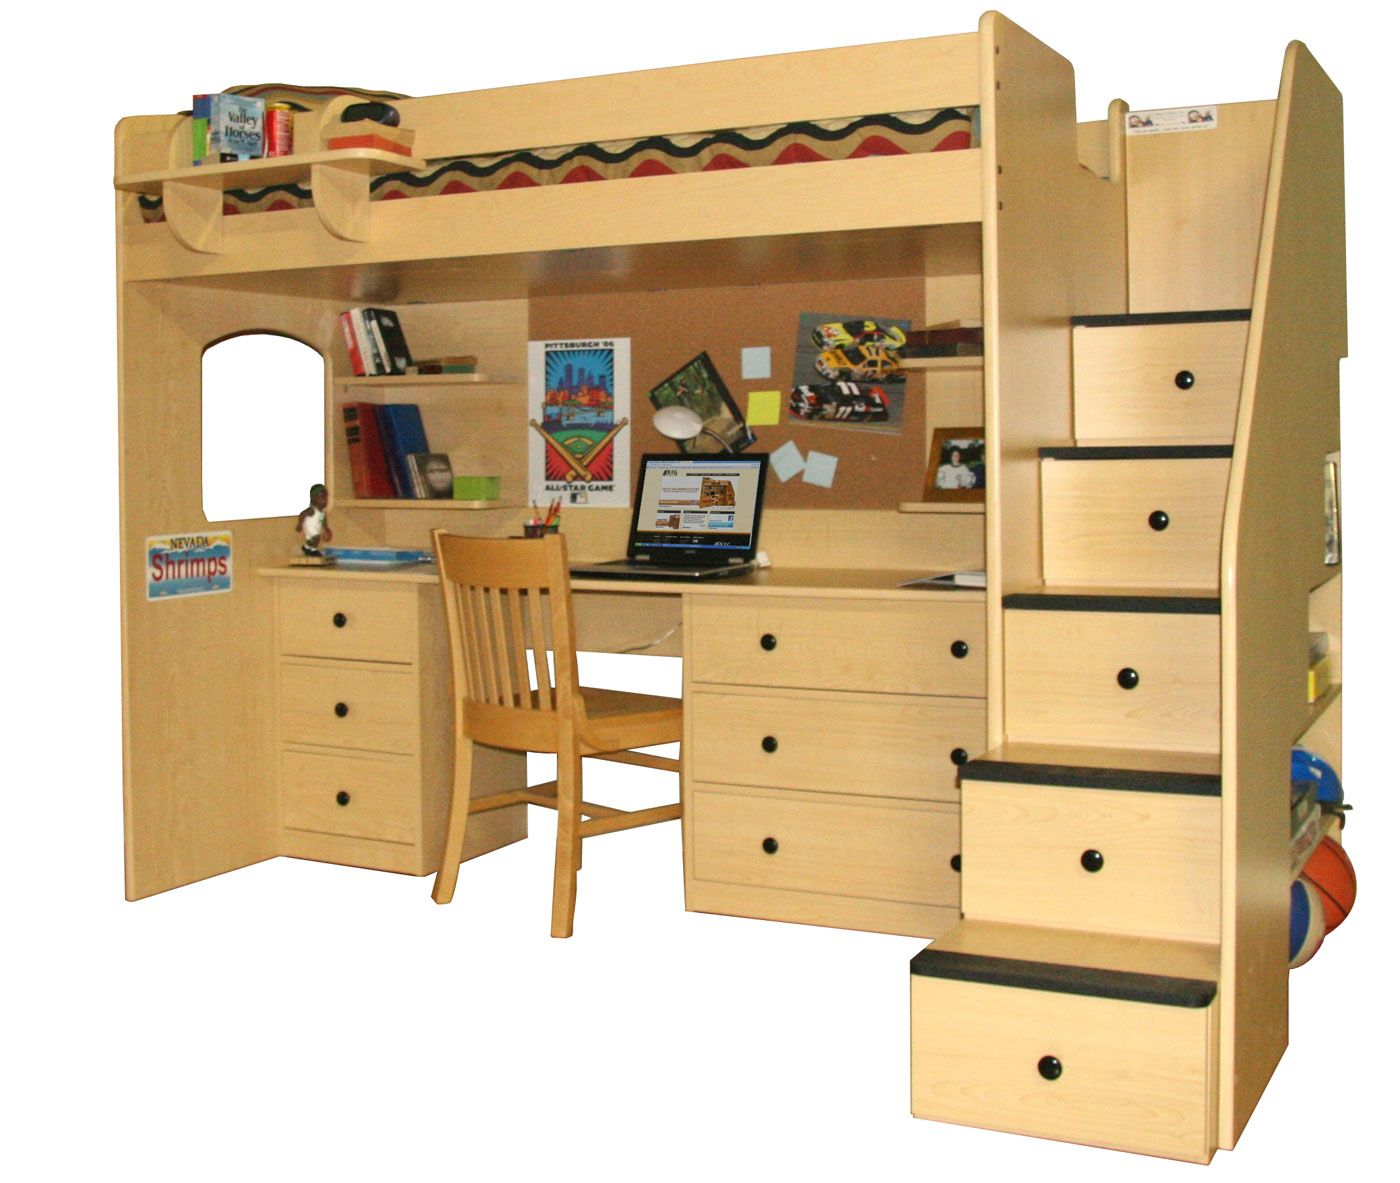 Bunk bed with desk for adults - 13 Best Images About Bunk Beds On Pinterest The Alphabet Loft Beds And Bookcases